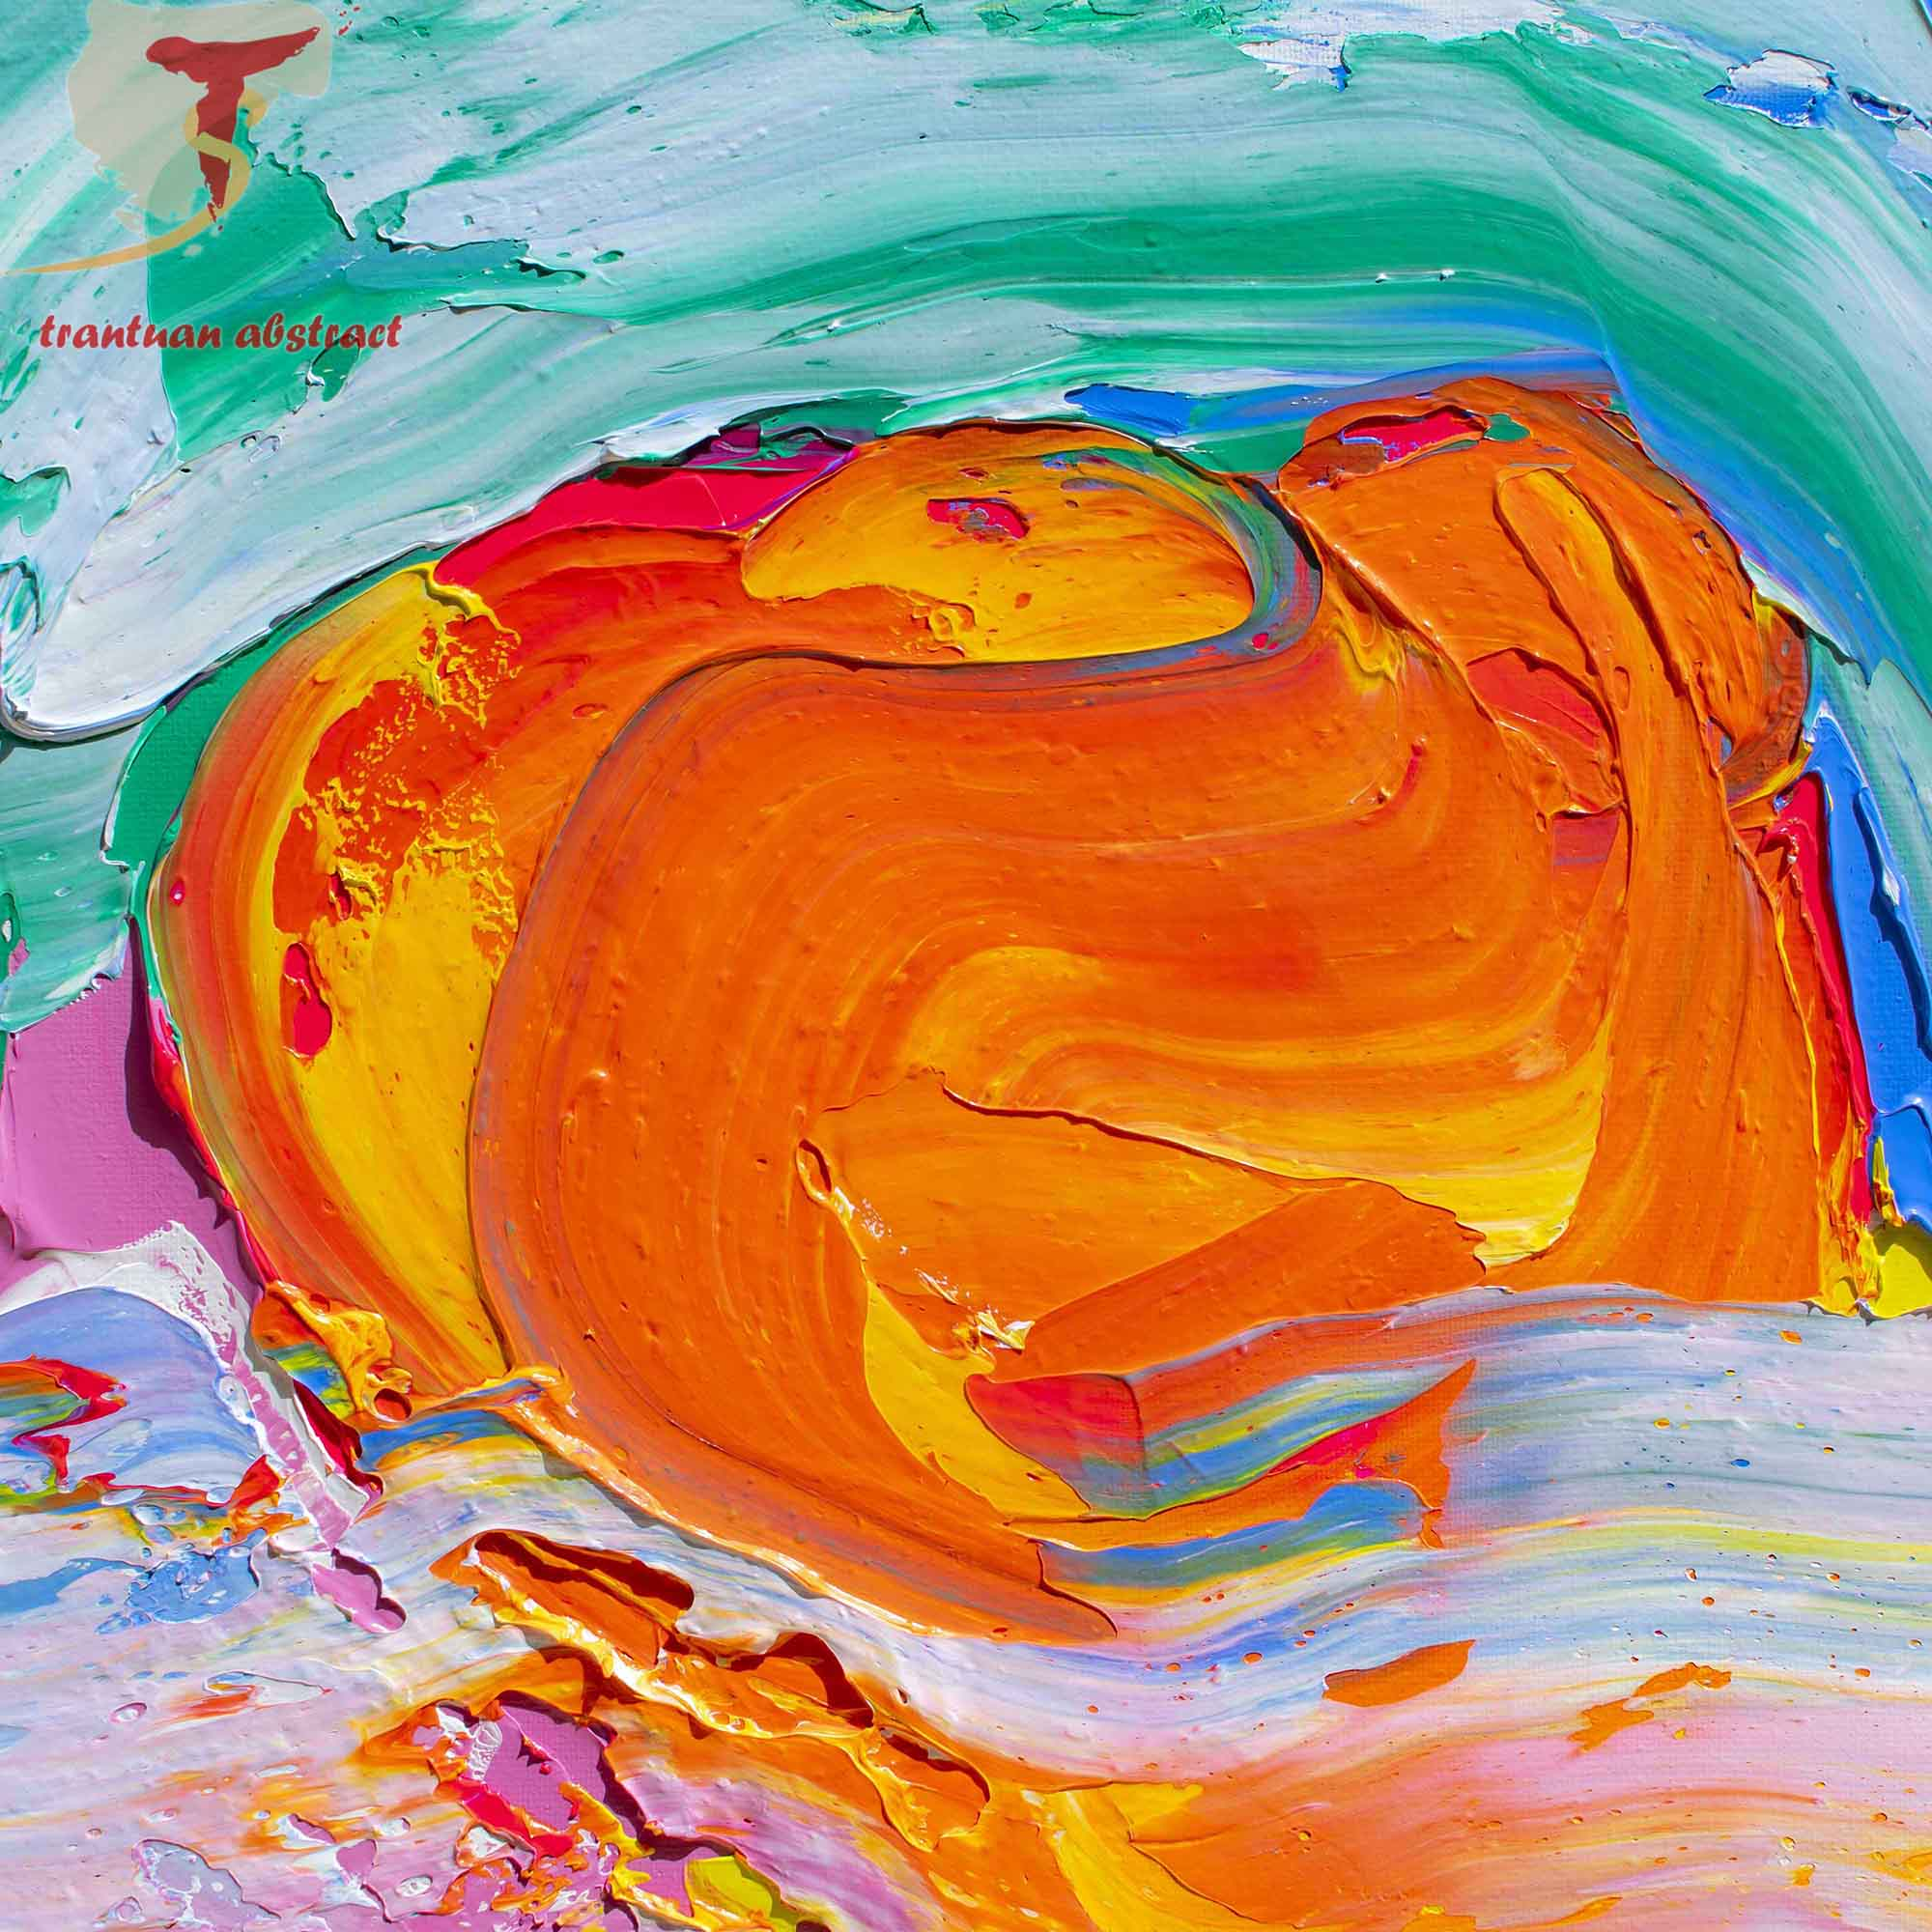 Tran Tuan Abstract Sun on the Waves 2021 135 x 80 x 5 cm Acrylic on Canvas Painting Detail s (27)